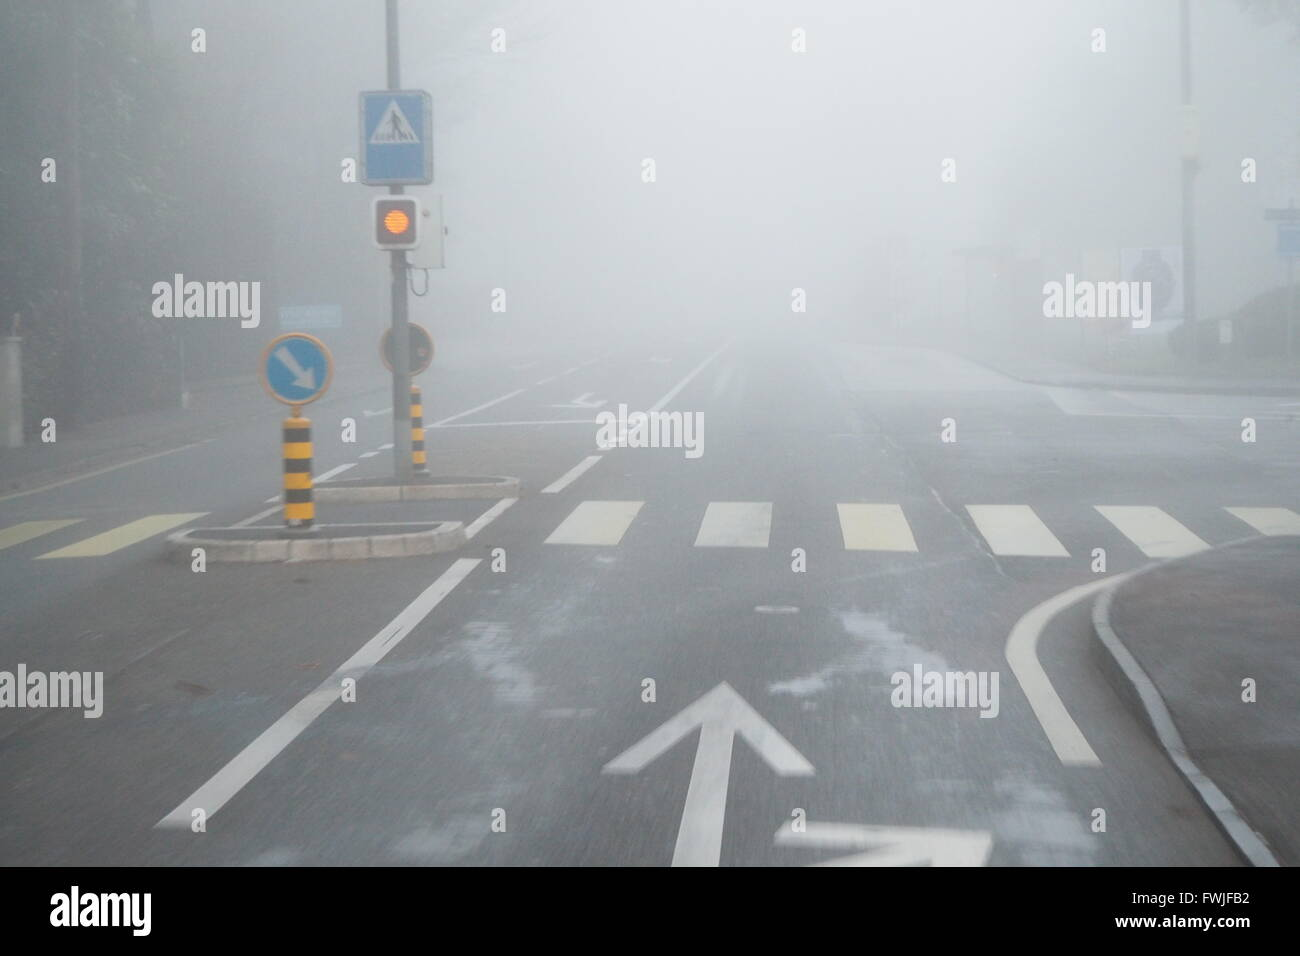 Markings On Empty Road During Foggy Weather - Stock Image